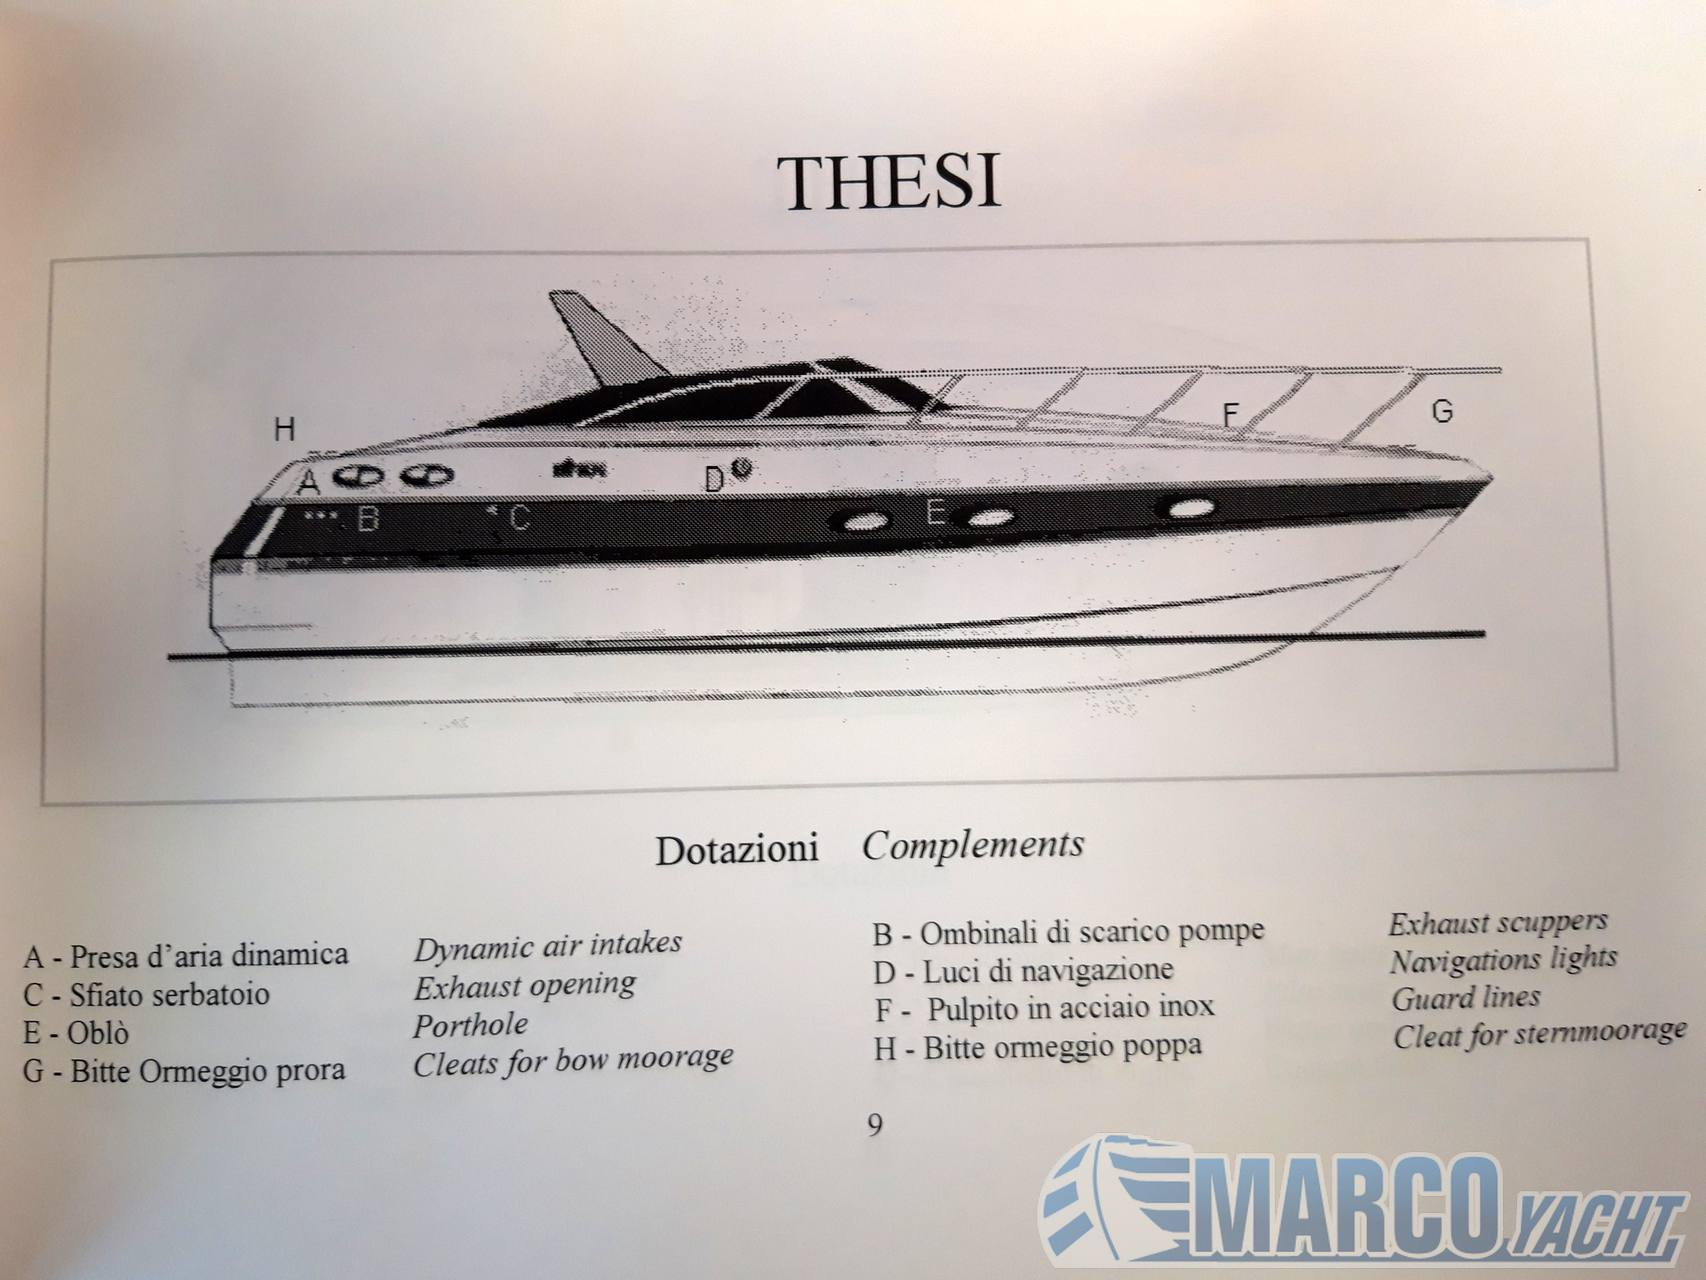 Ilver Thesi 32 Day cruiser used